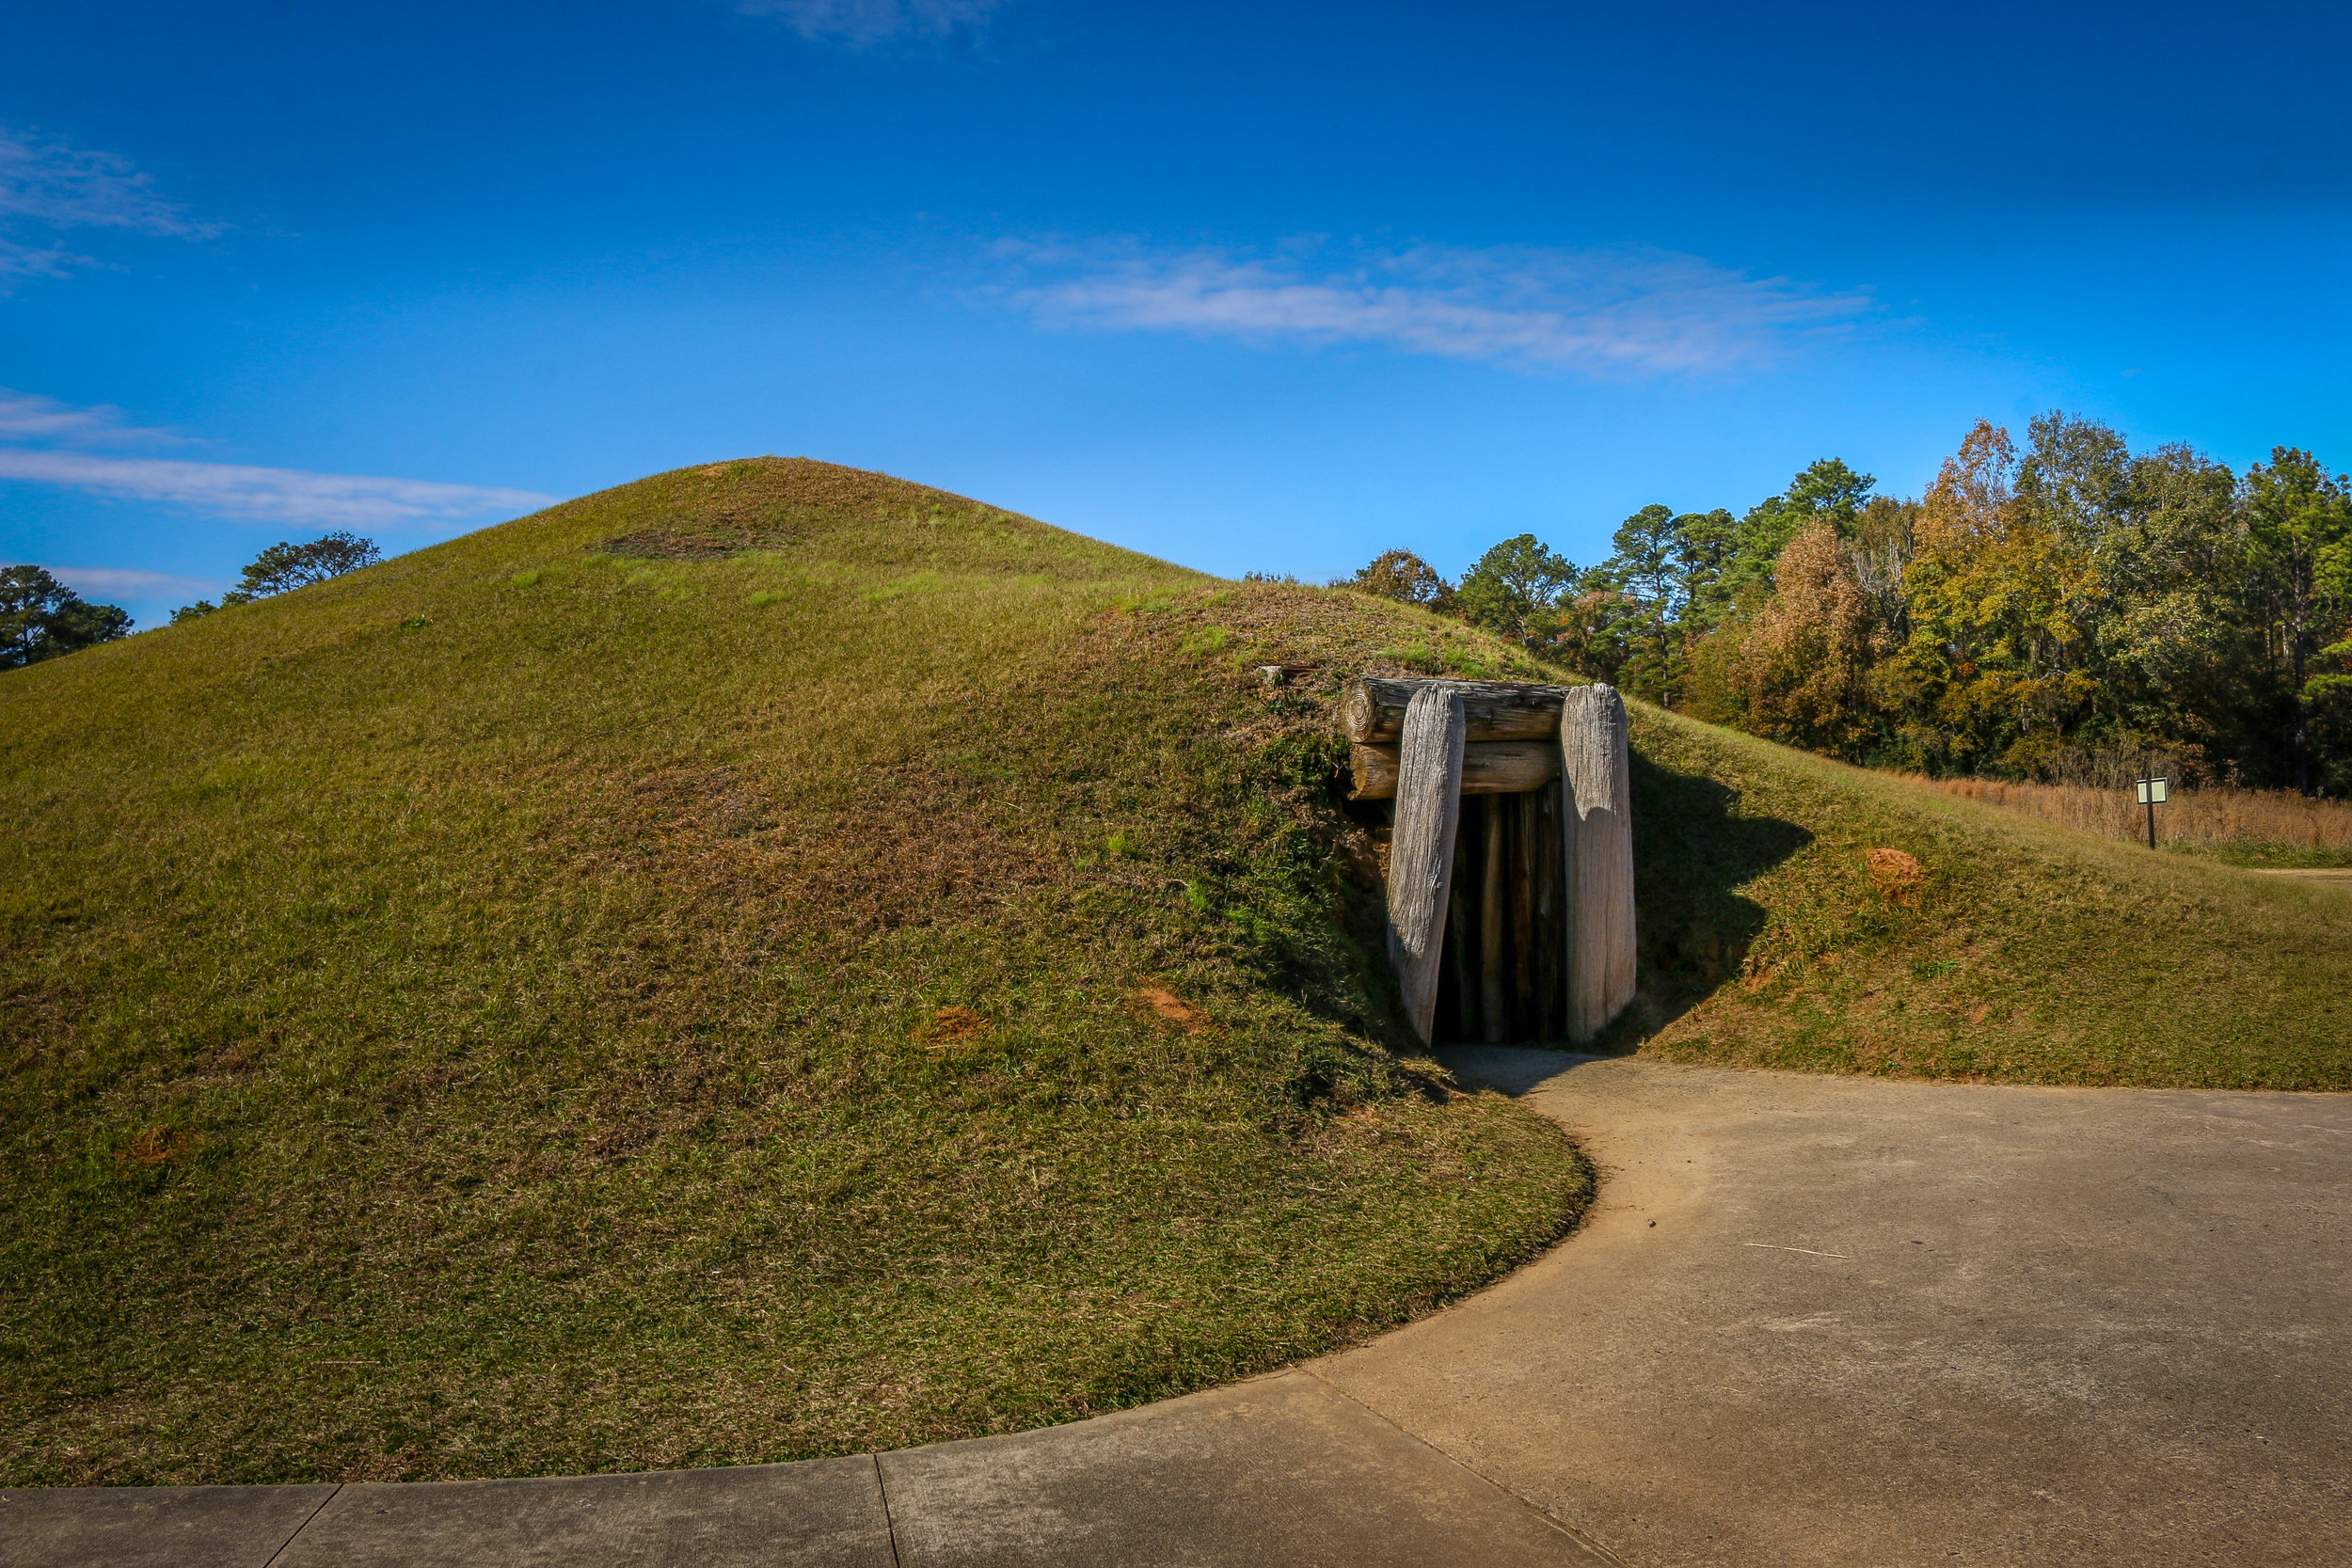 Ocmulgee's Earth Lodge Mound